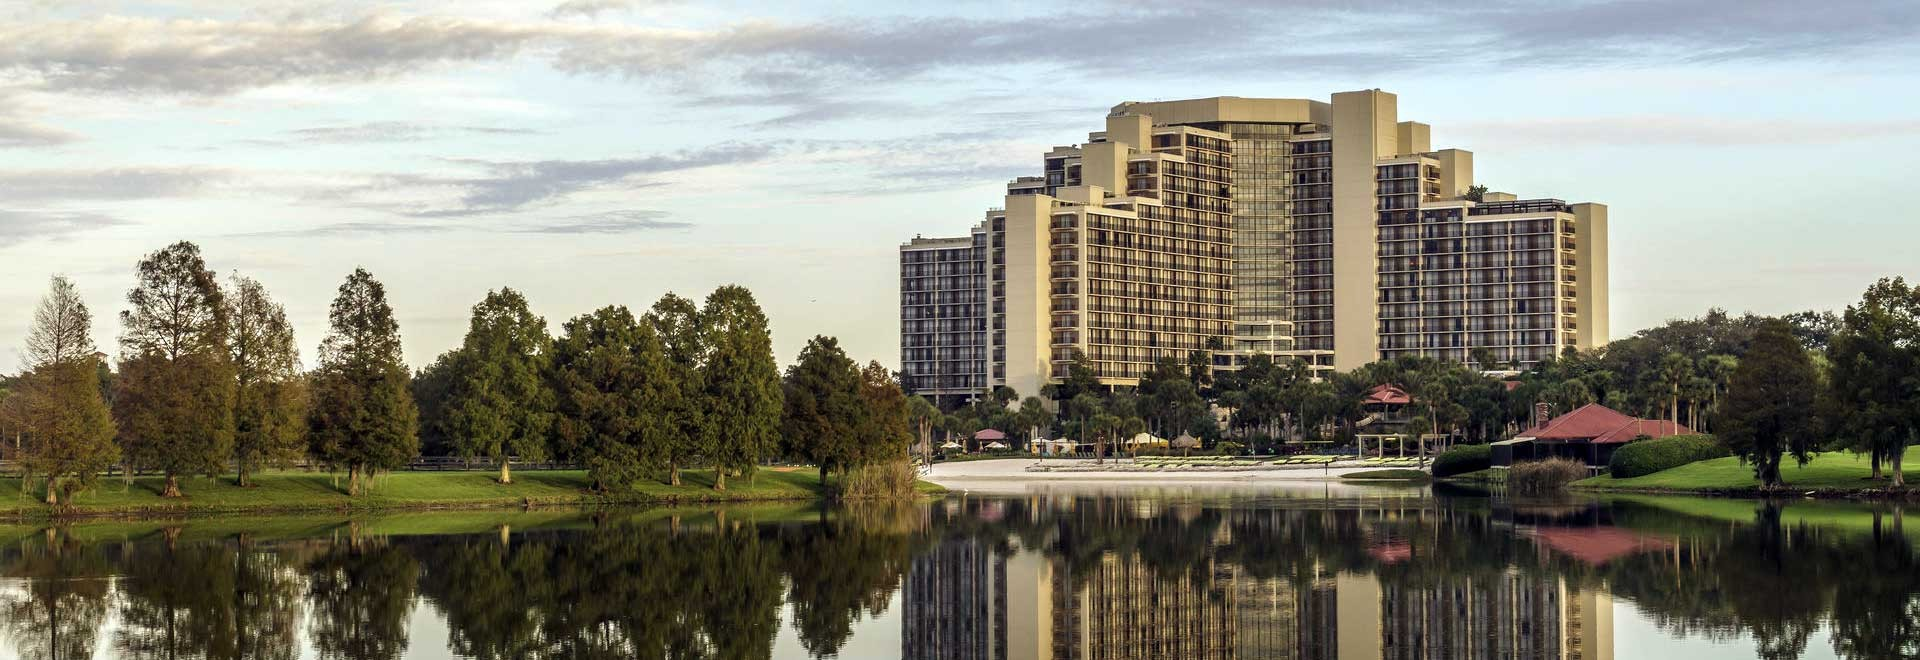 Hyatt Regency Grand Cypress, Florida - Book. Travel. Play.